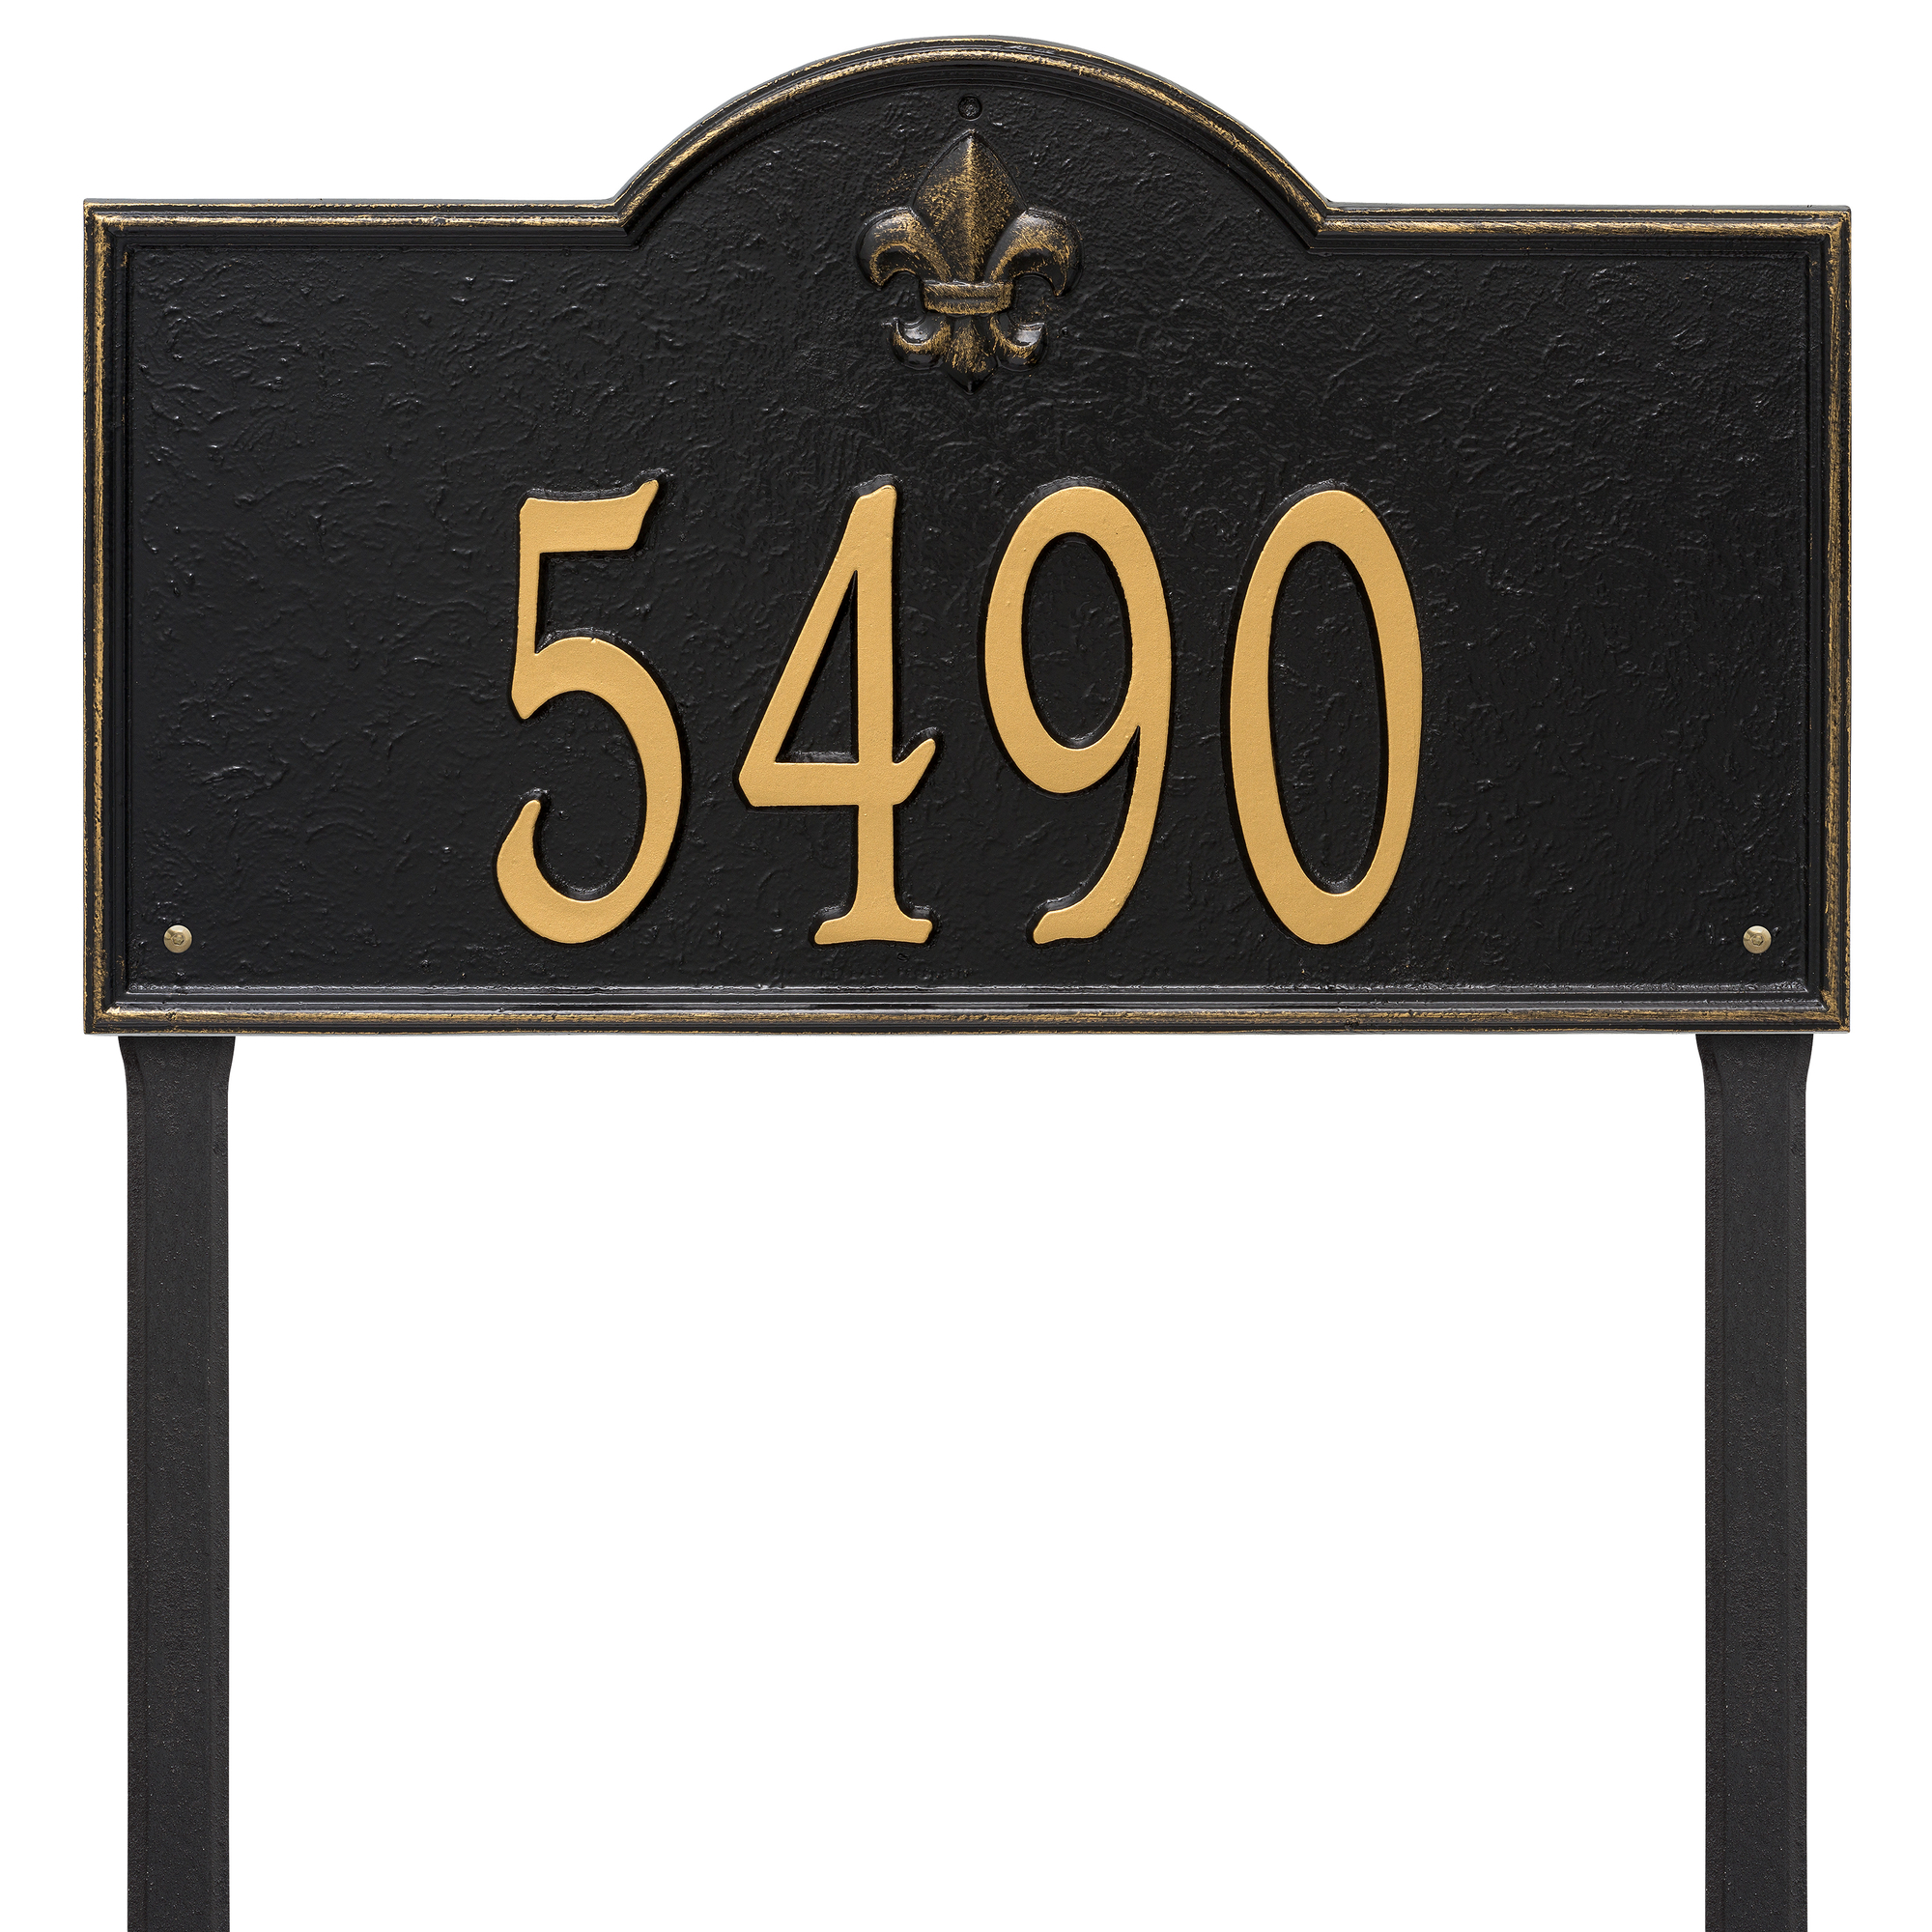 Personalized Whitehall Products Bayou Vista Estate Lawn House Numbers Plaque in Black/Gold